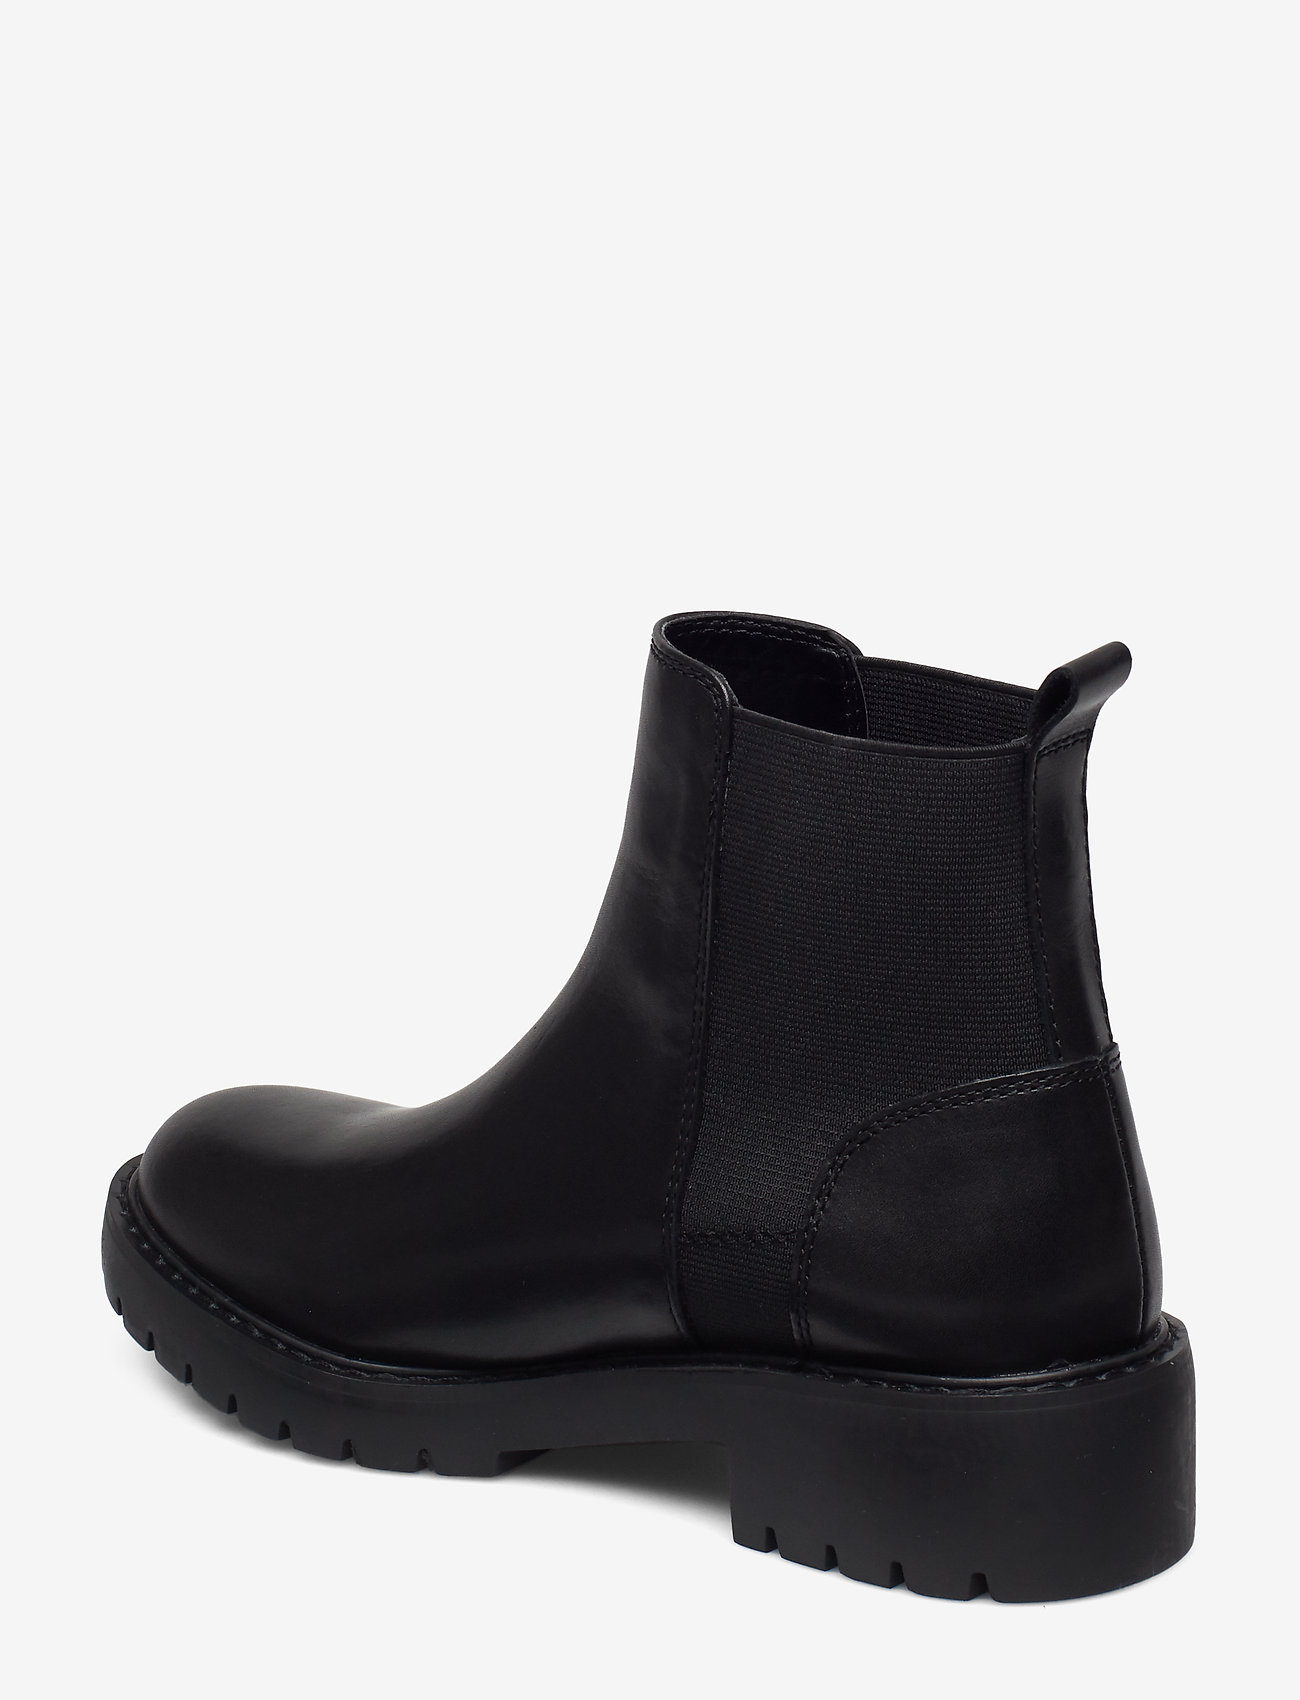 Gliding Bootie (Black Leather) - Steve Madden